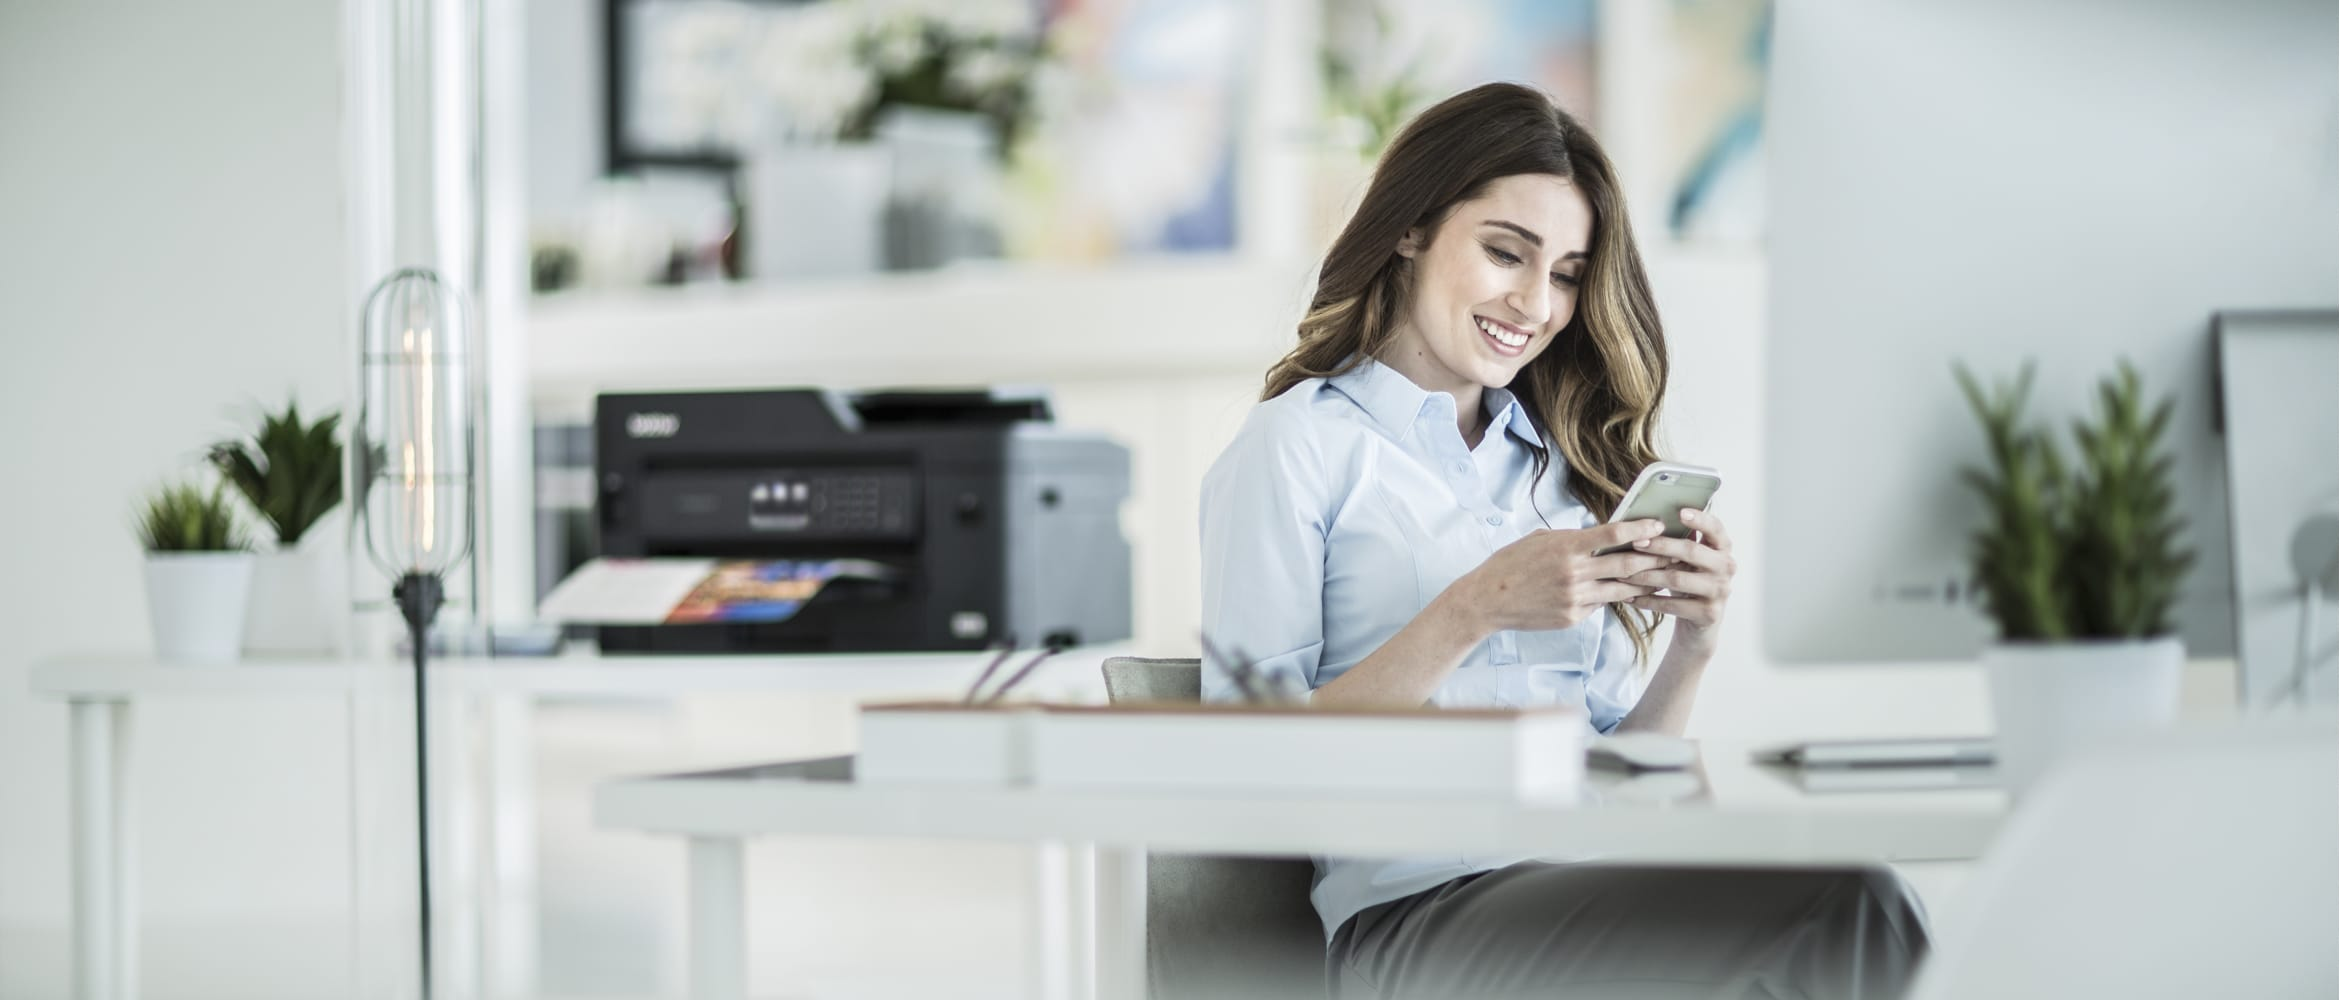 A lady printing a document from a smartphone in a home office environment